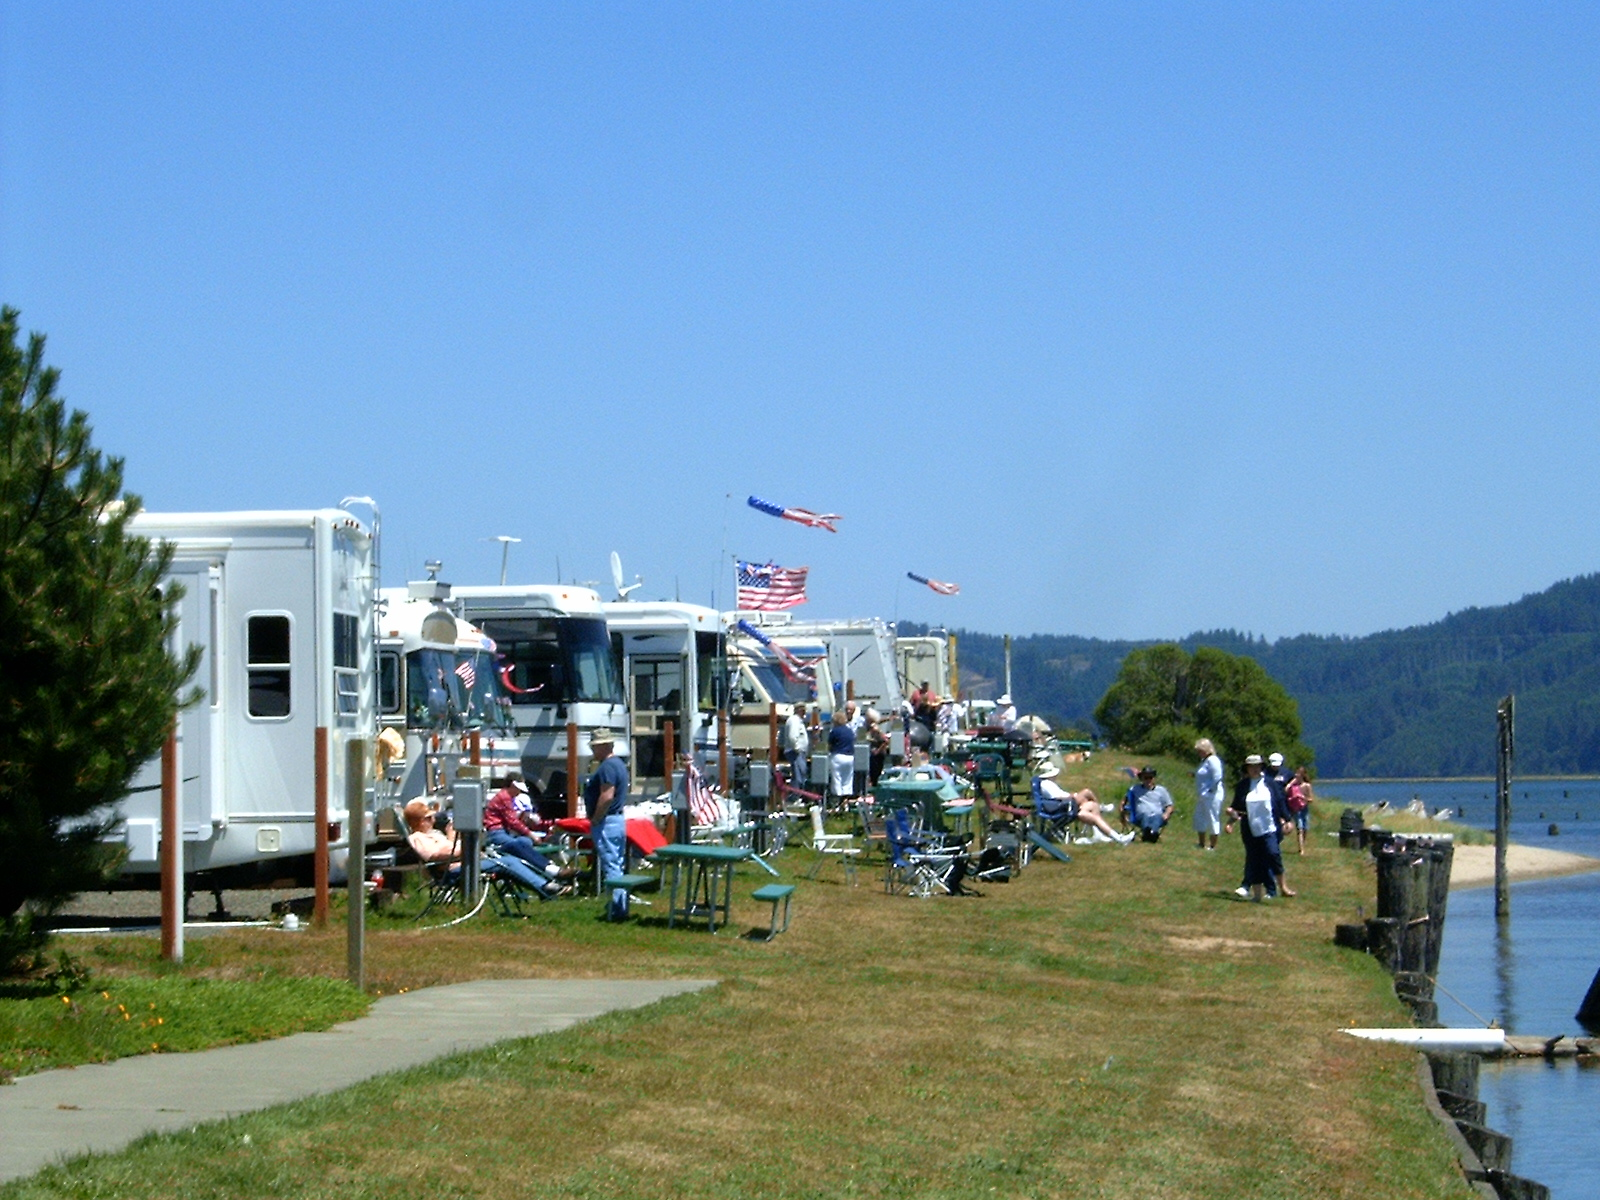 Celebrate the 4th of July at the Port of Siuslaw